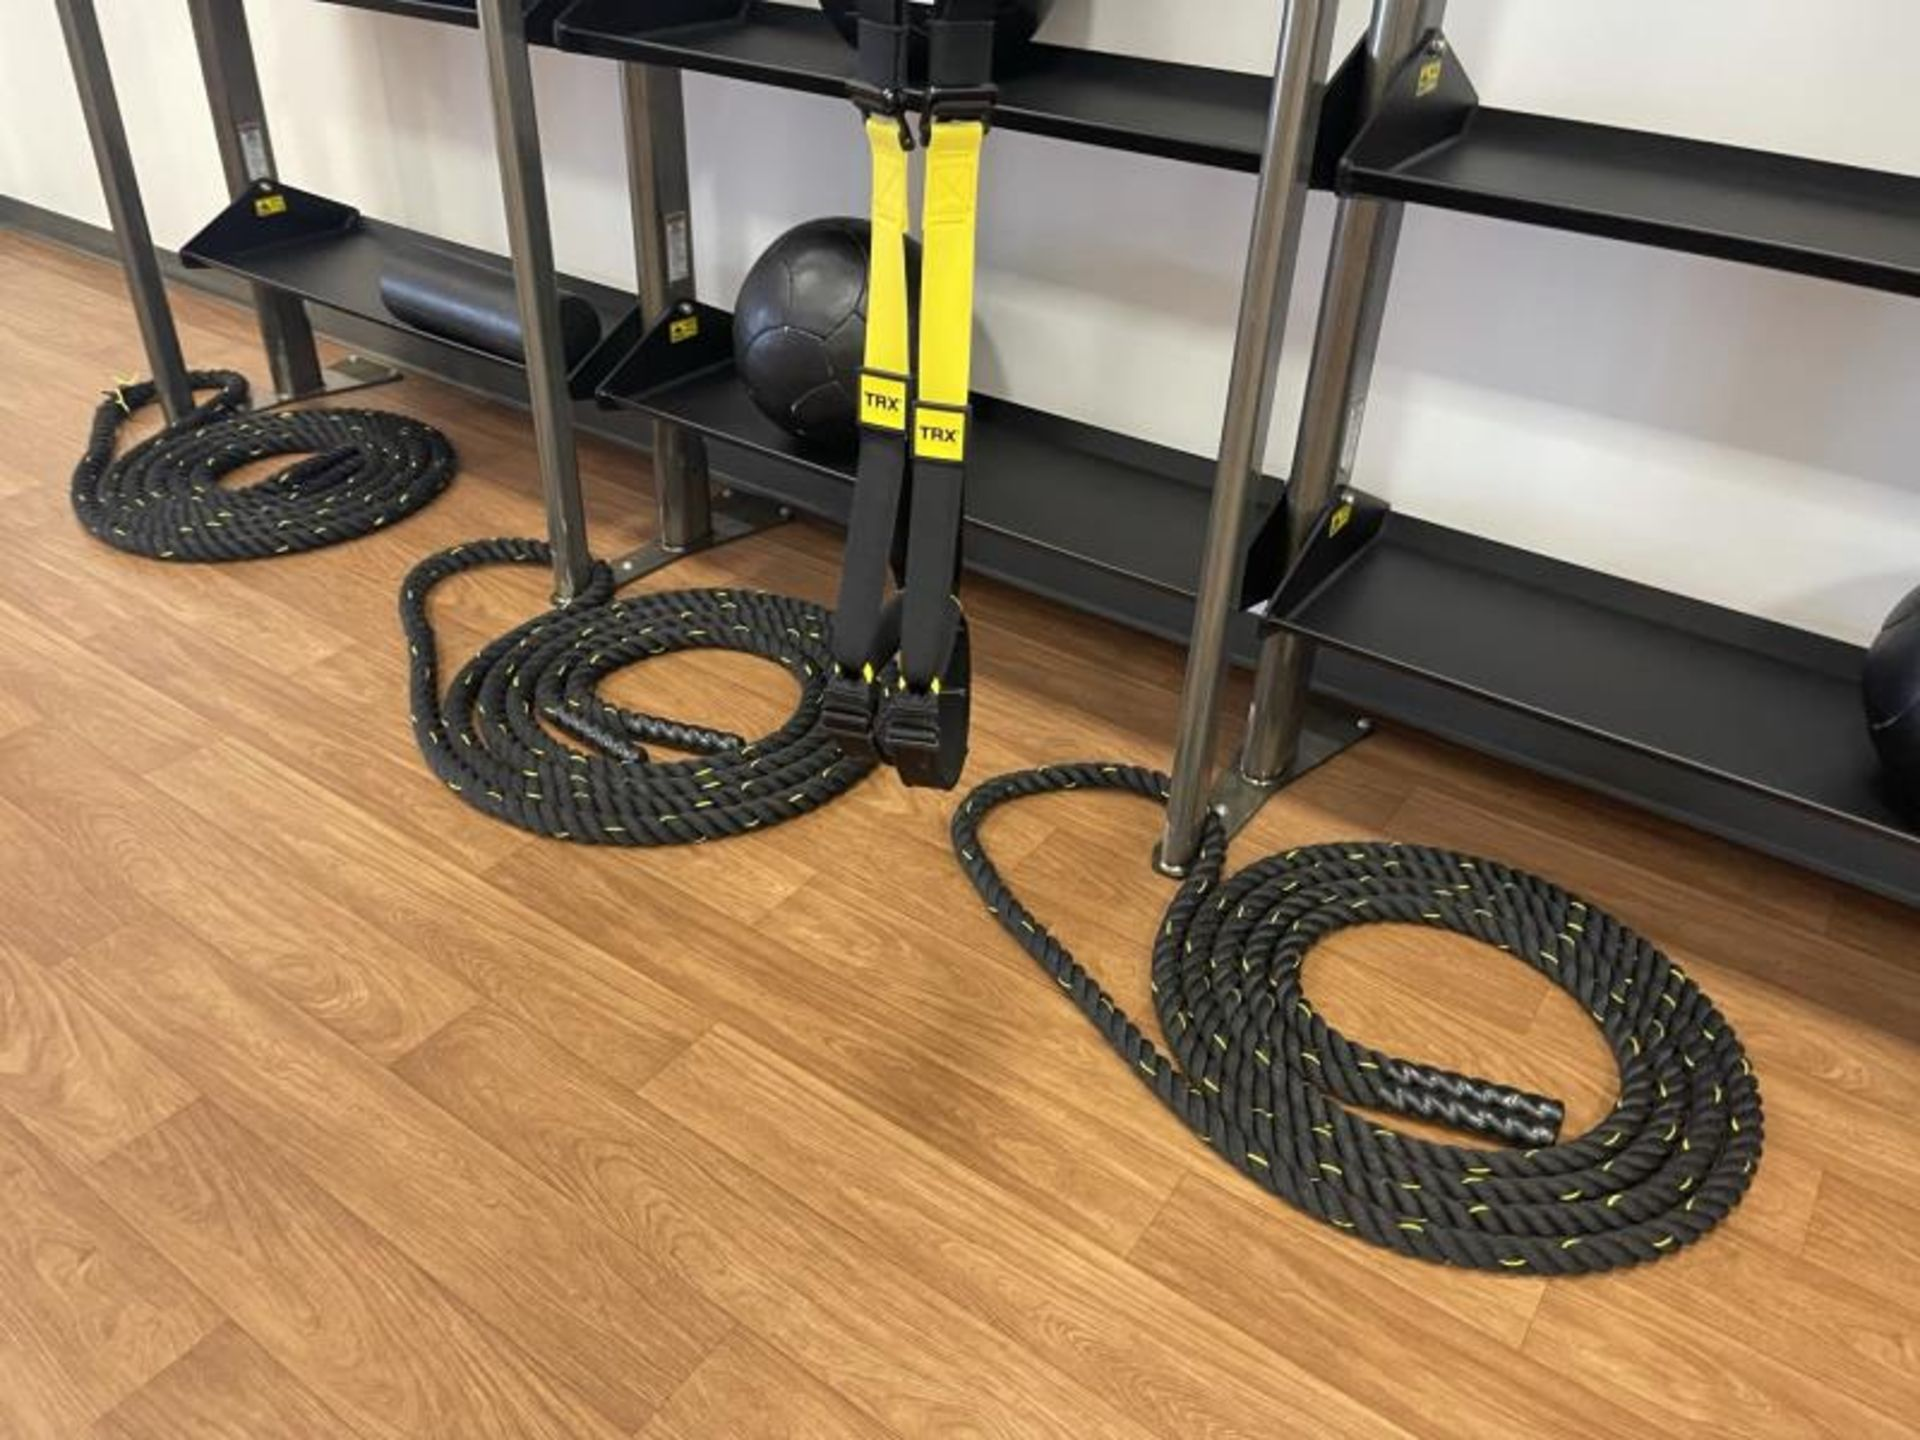 Life Fitness SYNRGY Wall Rack Training System, TRX Training System Straps, Rope, Balls - Image 5 of 8